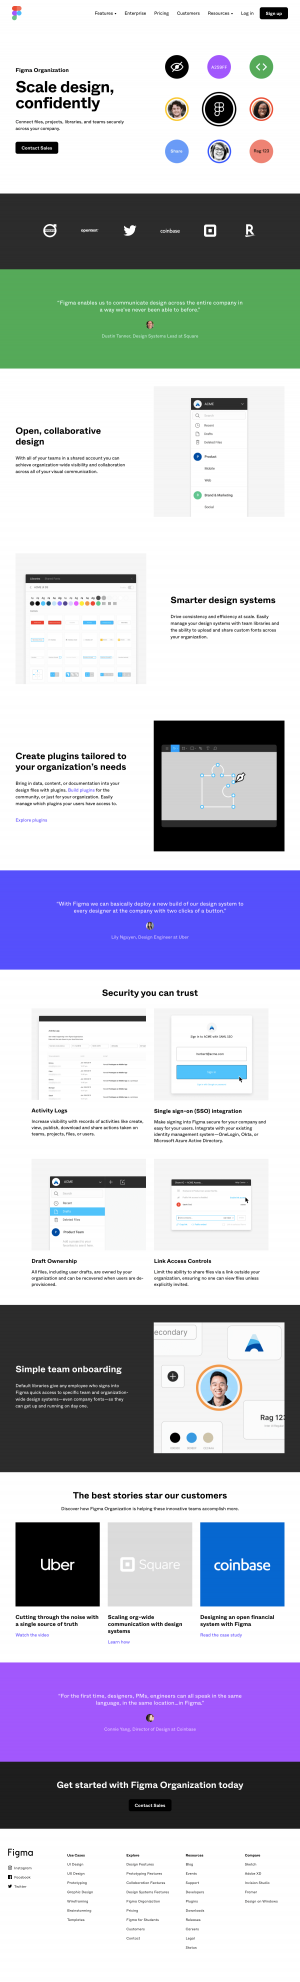 Figma - Features page 2